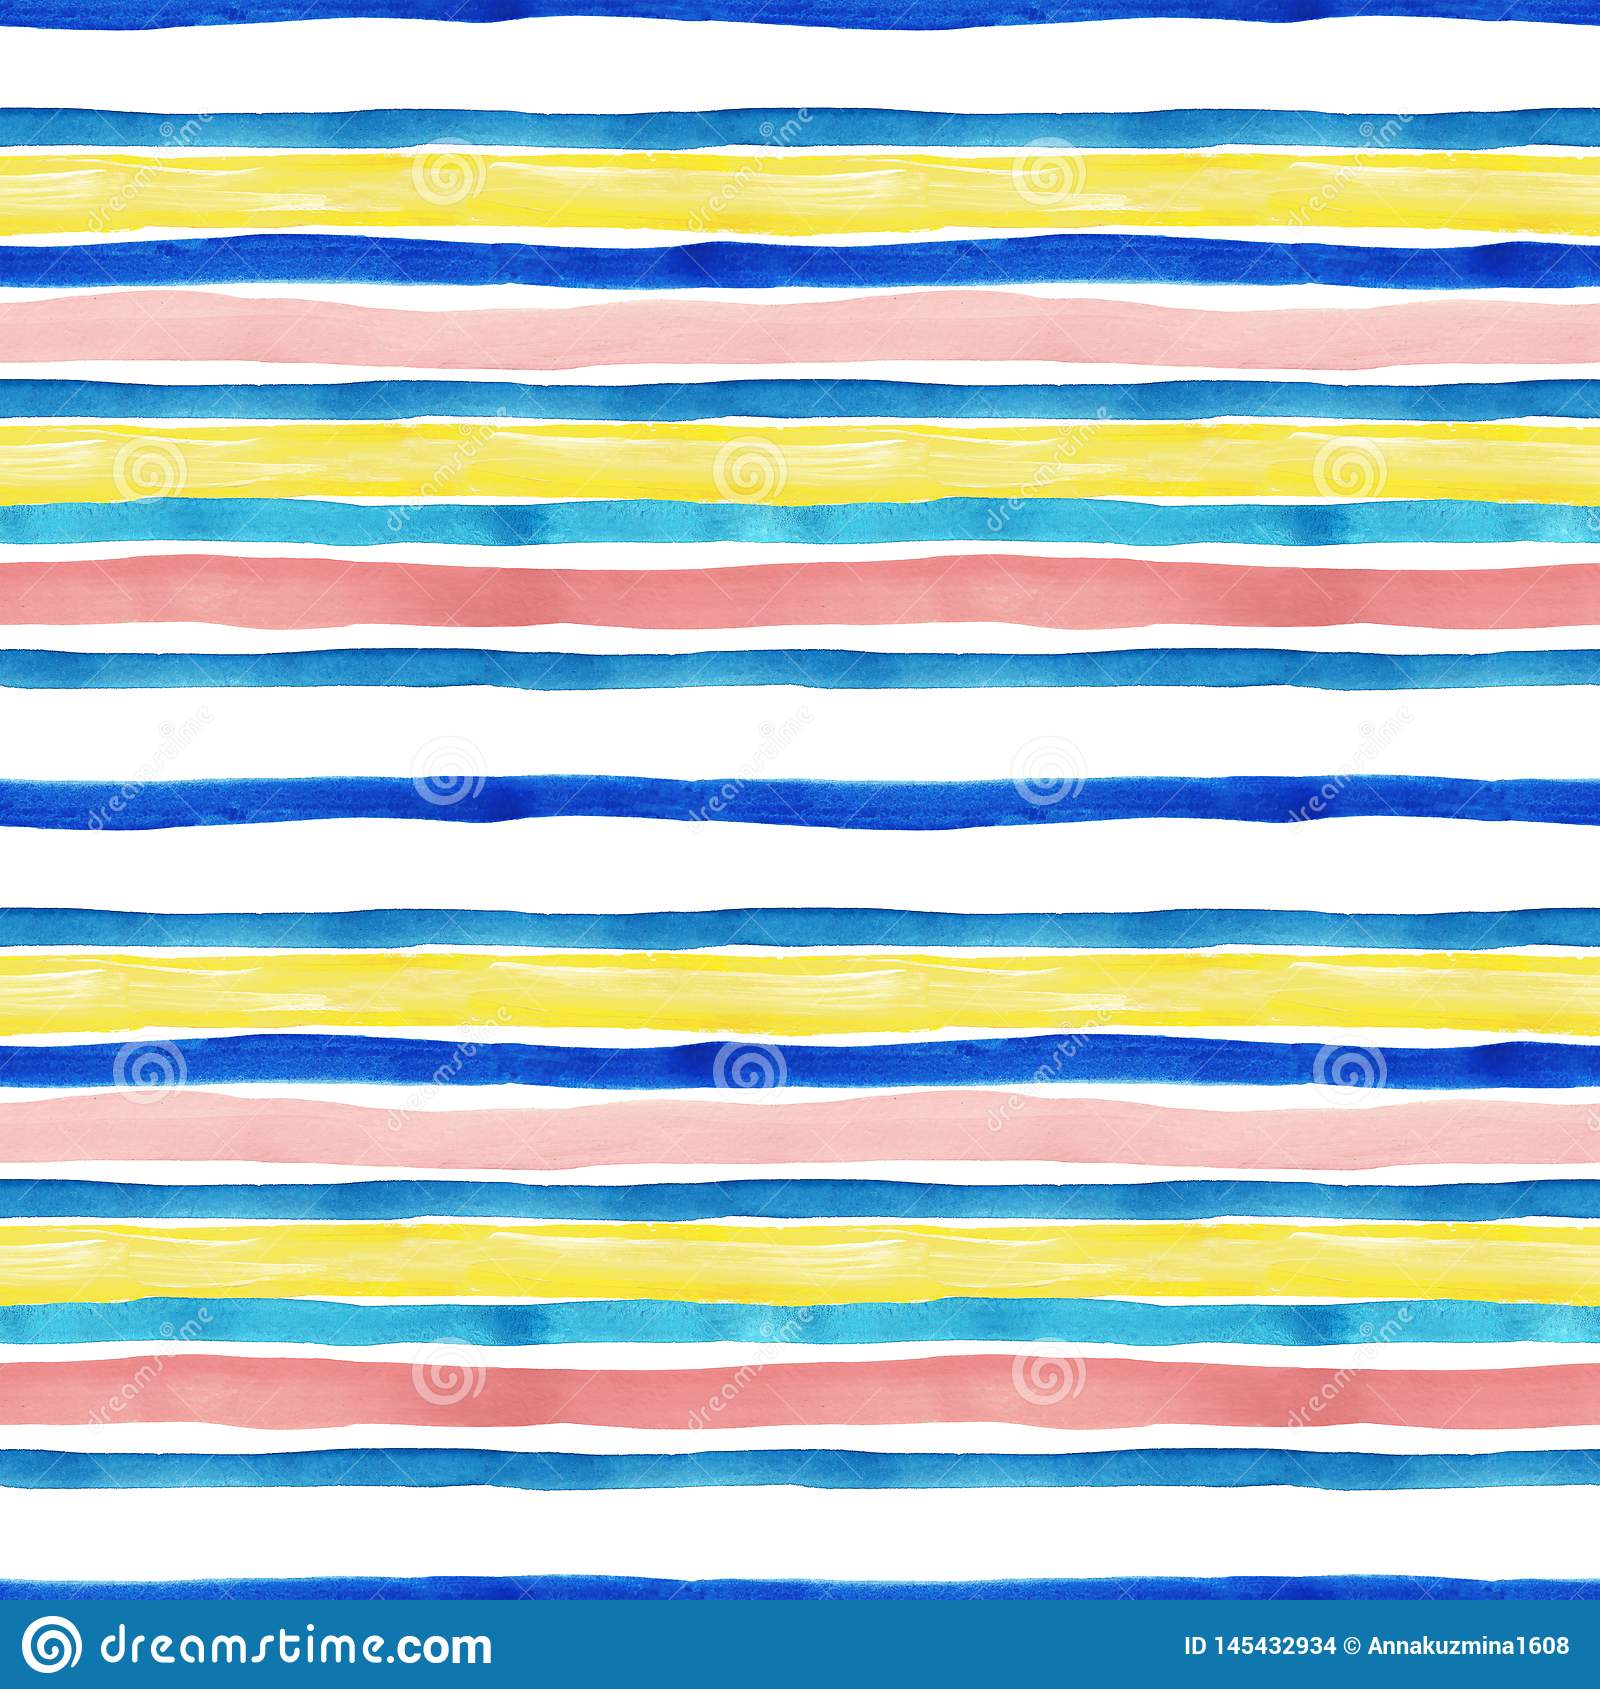 Watercolor Striped Seamless Pattern With Blue Turquoise Yellow And Pastel Pink Stripes On White Background Stock Illustration Illustration Of Retro Blue 145432934